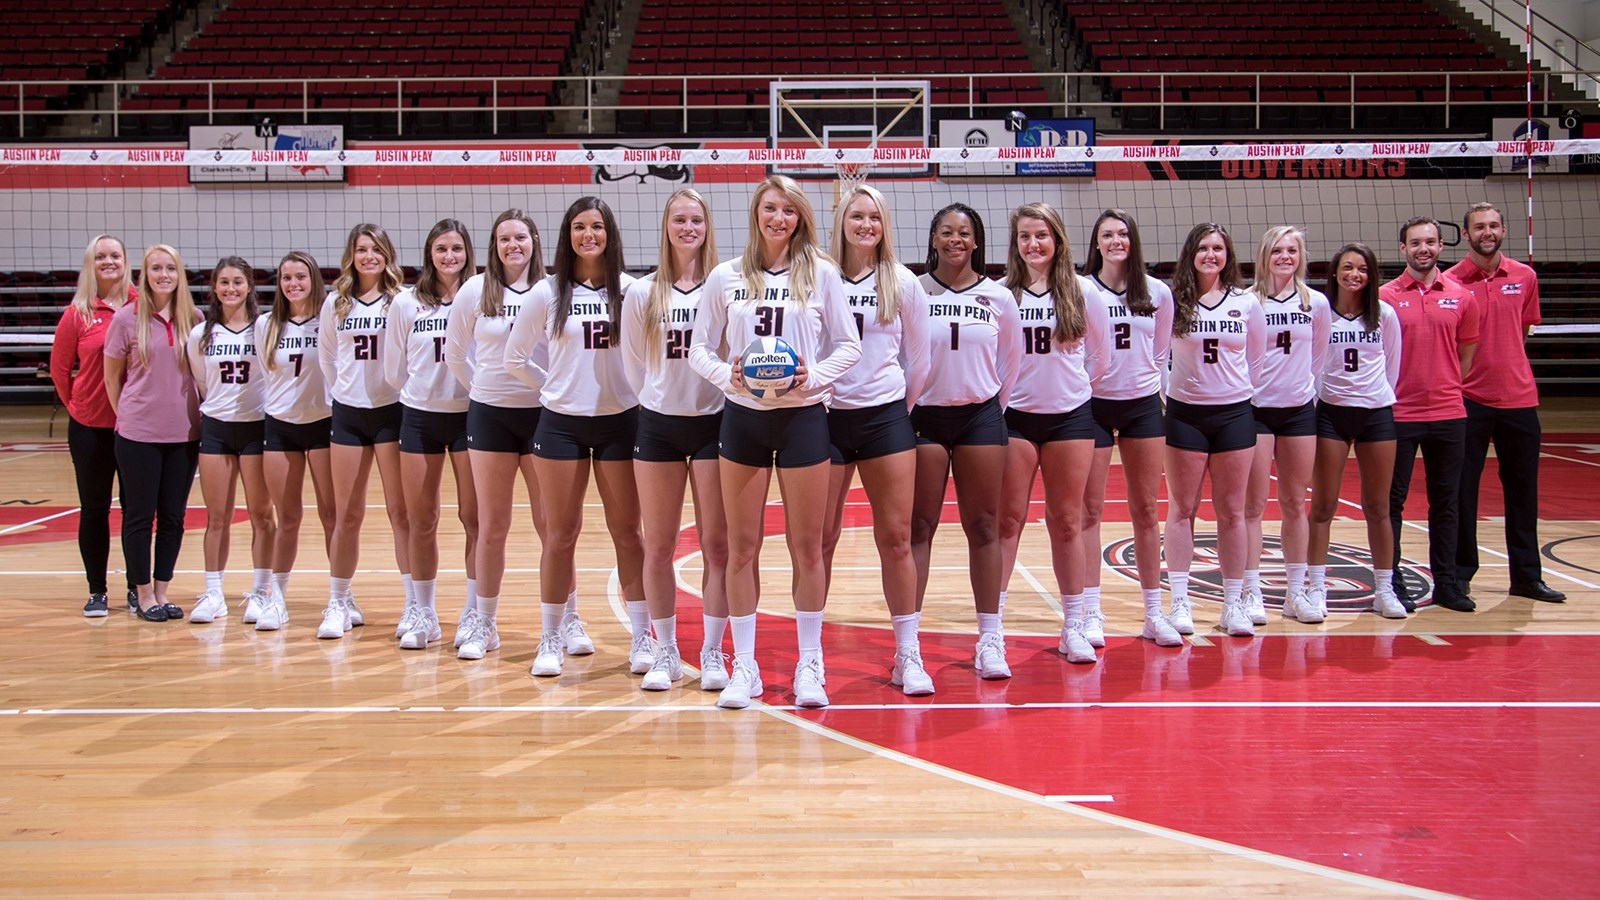 2018 women s volleyball roster austin peay state university athletics